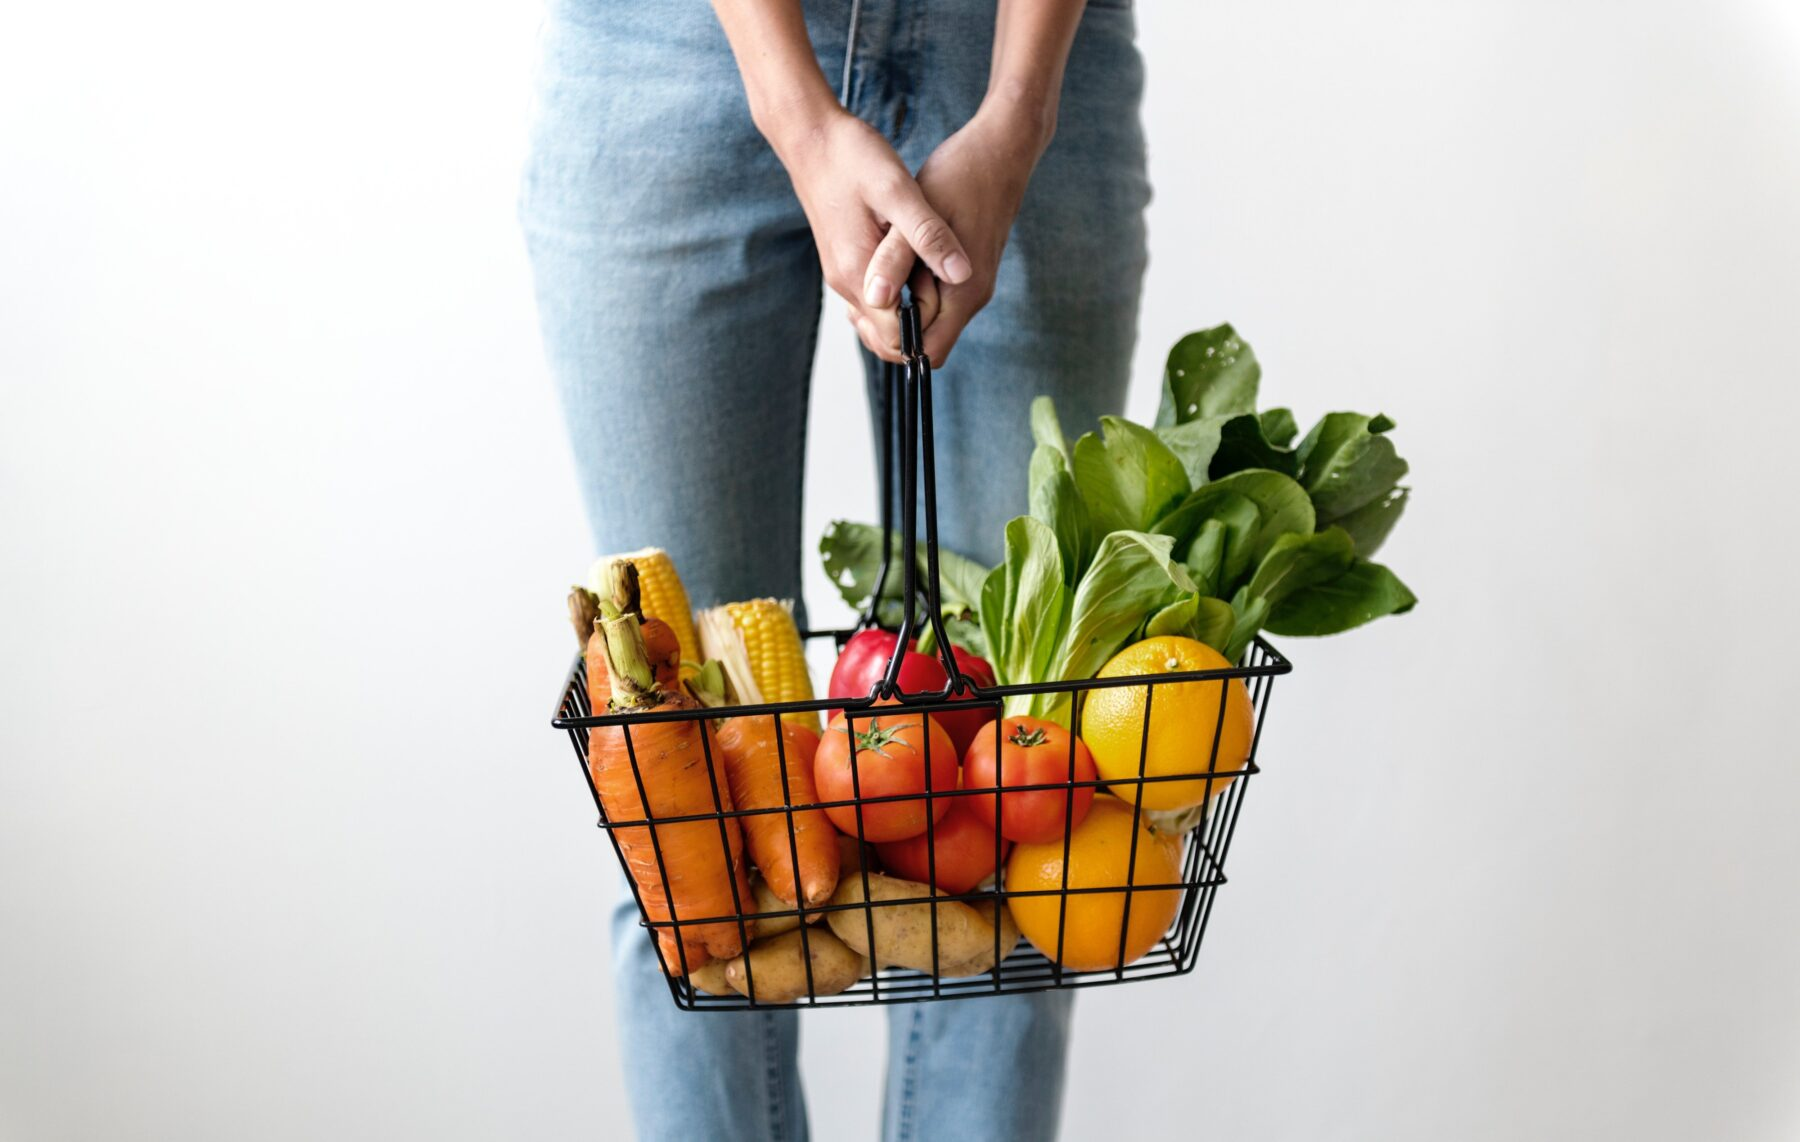 This image shows a shot of a person holding a wire basket in front of themselves. The basket has a mixture of vegetables loaded up inside. The person is wearing skinny jeans.